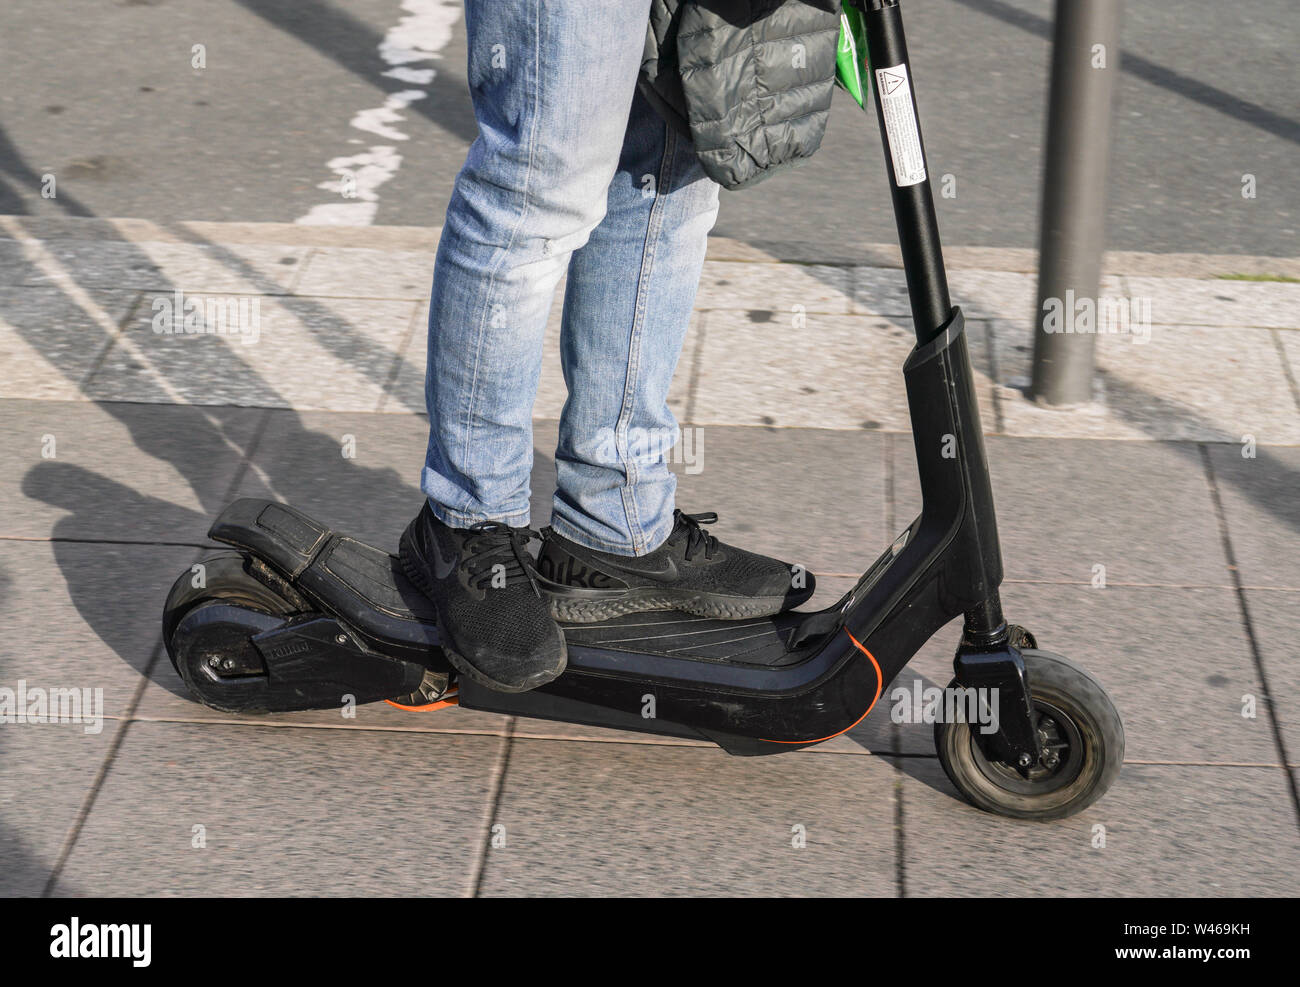 15 July 2019, Hessen, Frankfurt/Main: A man drives through the city centre on an e-scooter that has neither an operating permit nor an insurance number. Photo: Frank Rumpenhorst/dpa - Stock Image